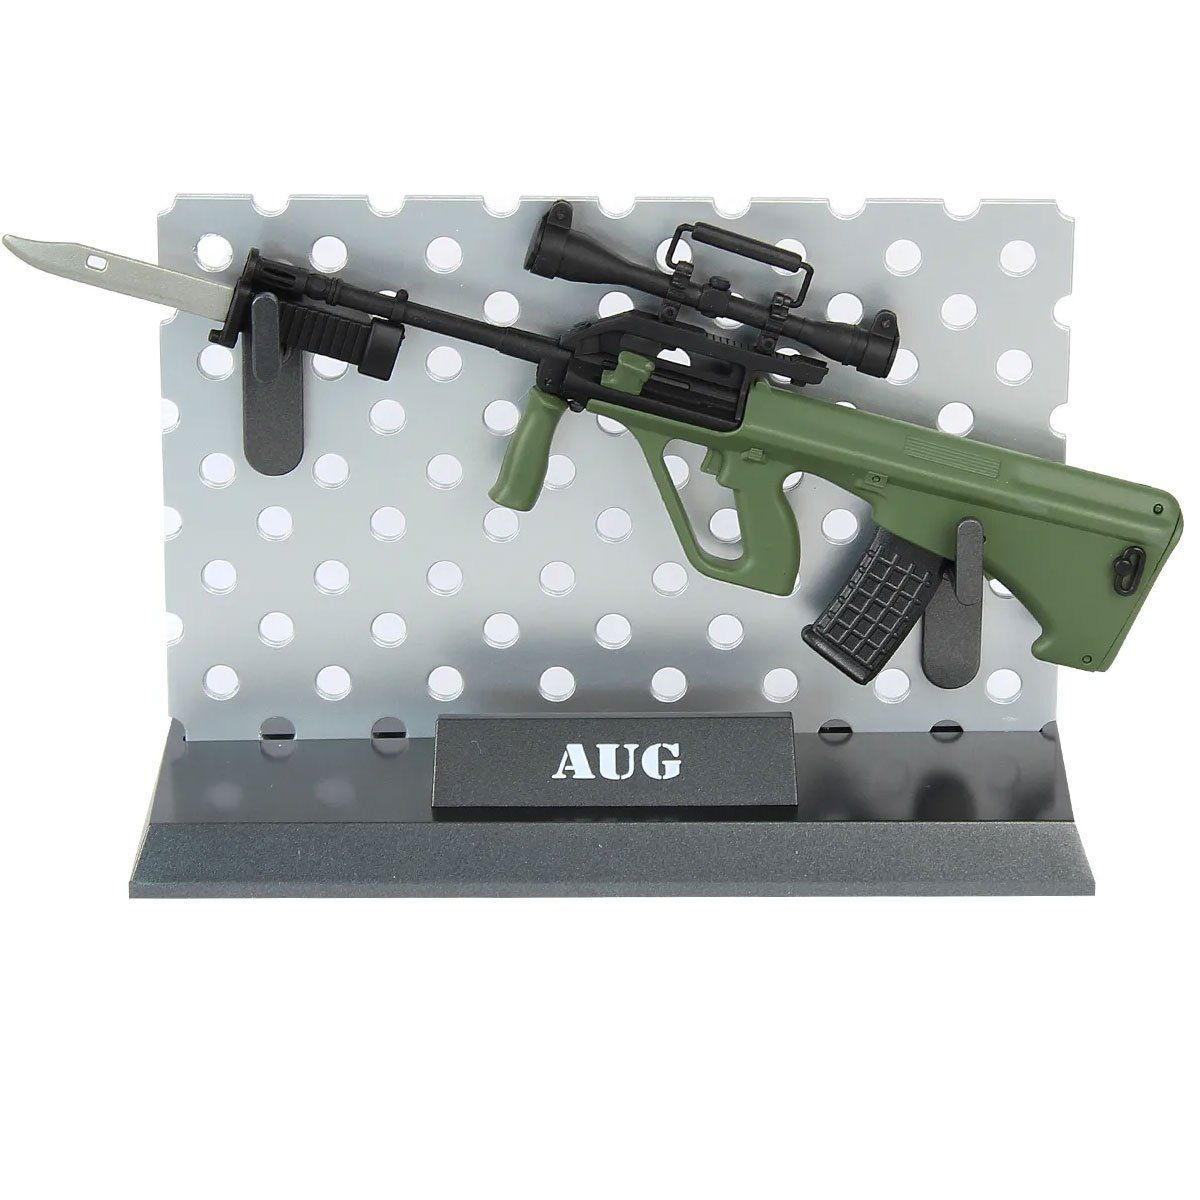 Miniatura de Arma Rifle  Steyr AUG Oliva + Faca Arsenal Guns